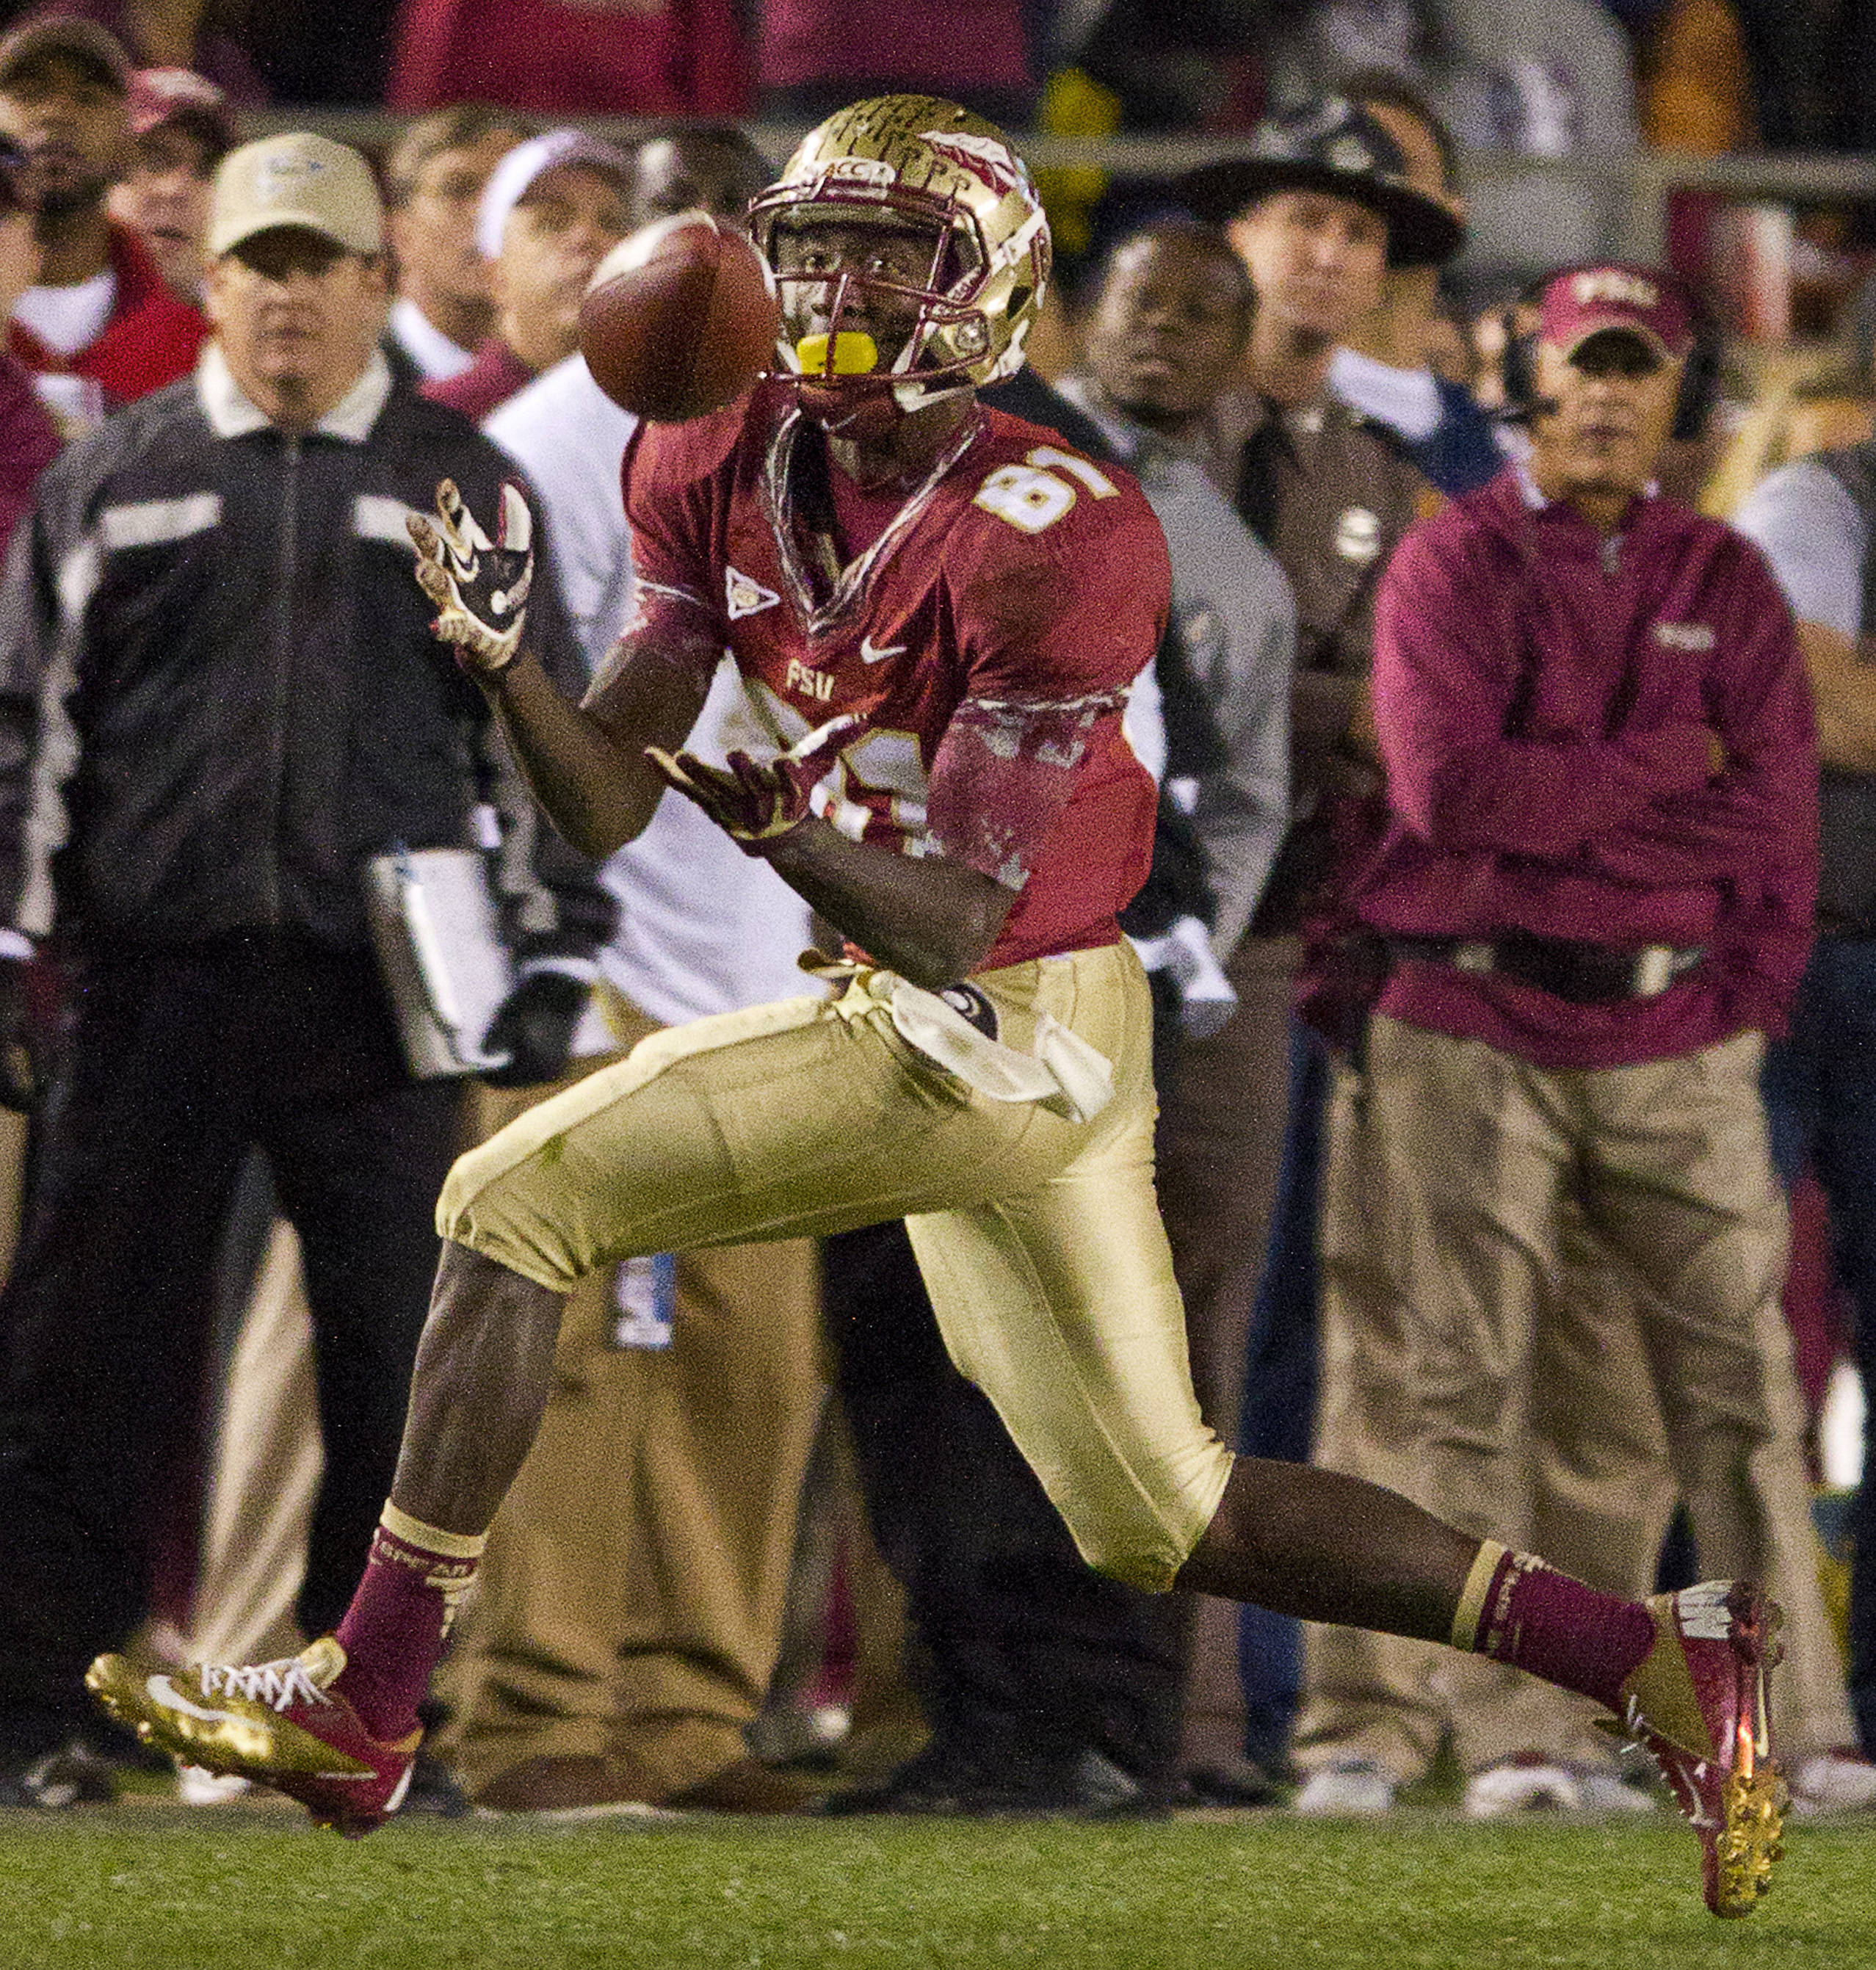 Kenny Shaw (81) makes a reception during FSU Football's game against UF on Saturday, November 24, 2012 in Tallahassee, Fla.